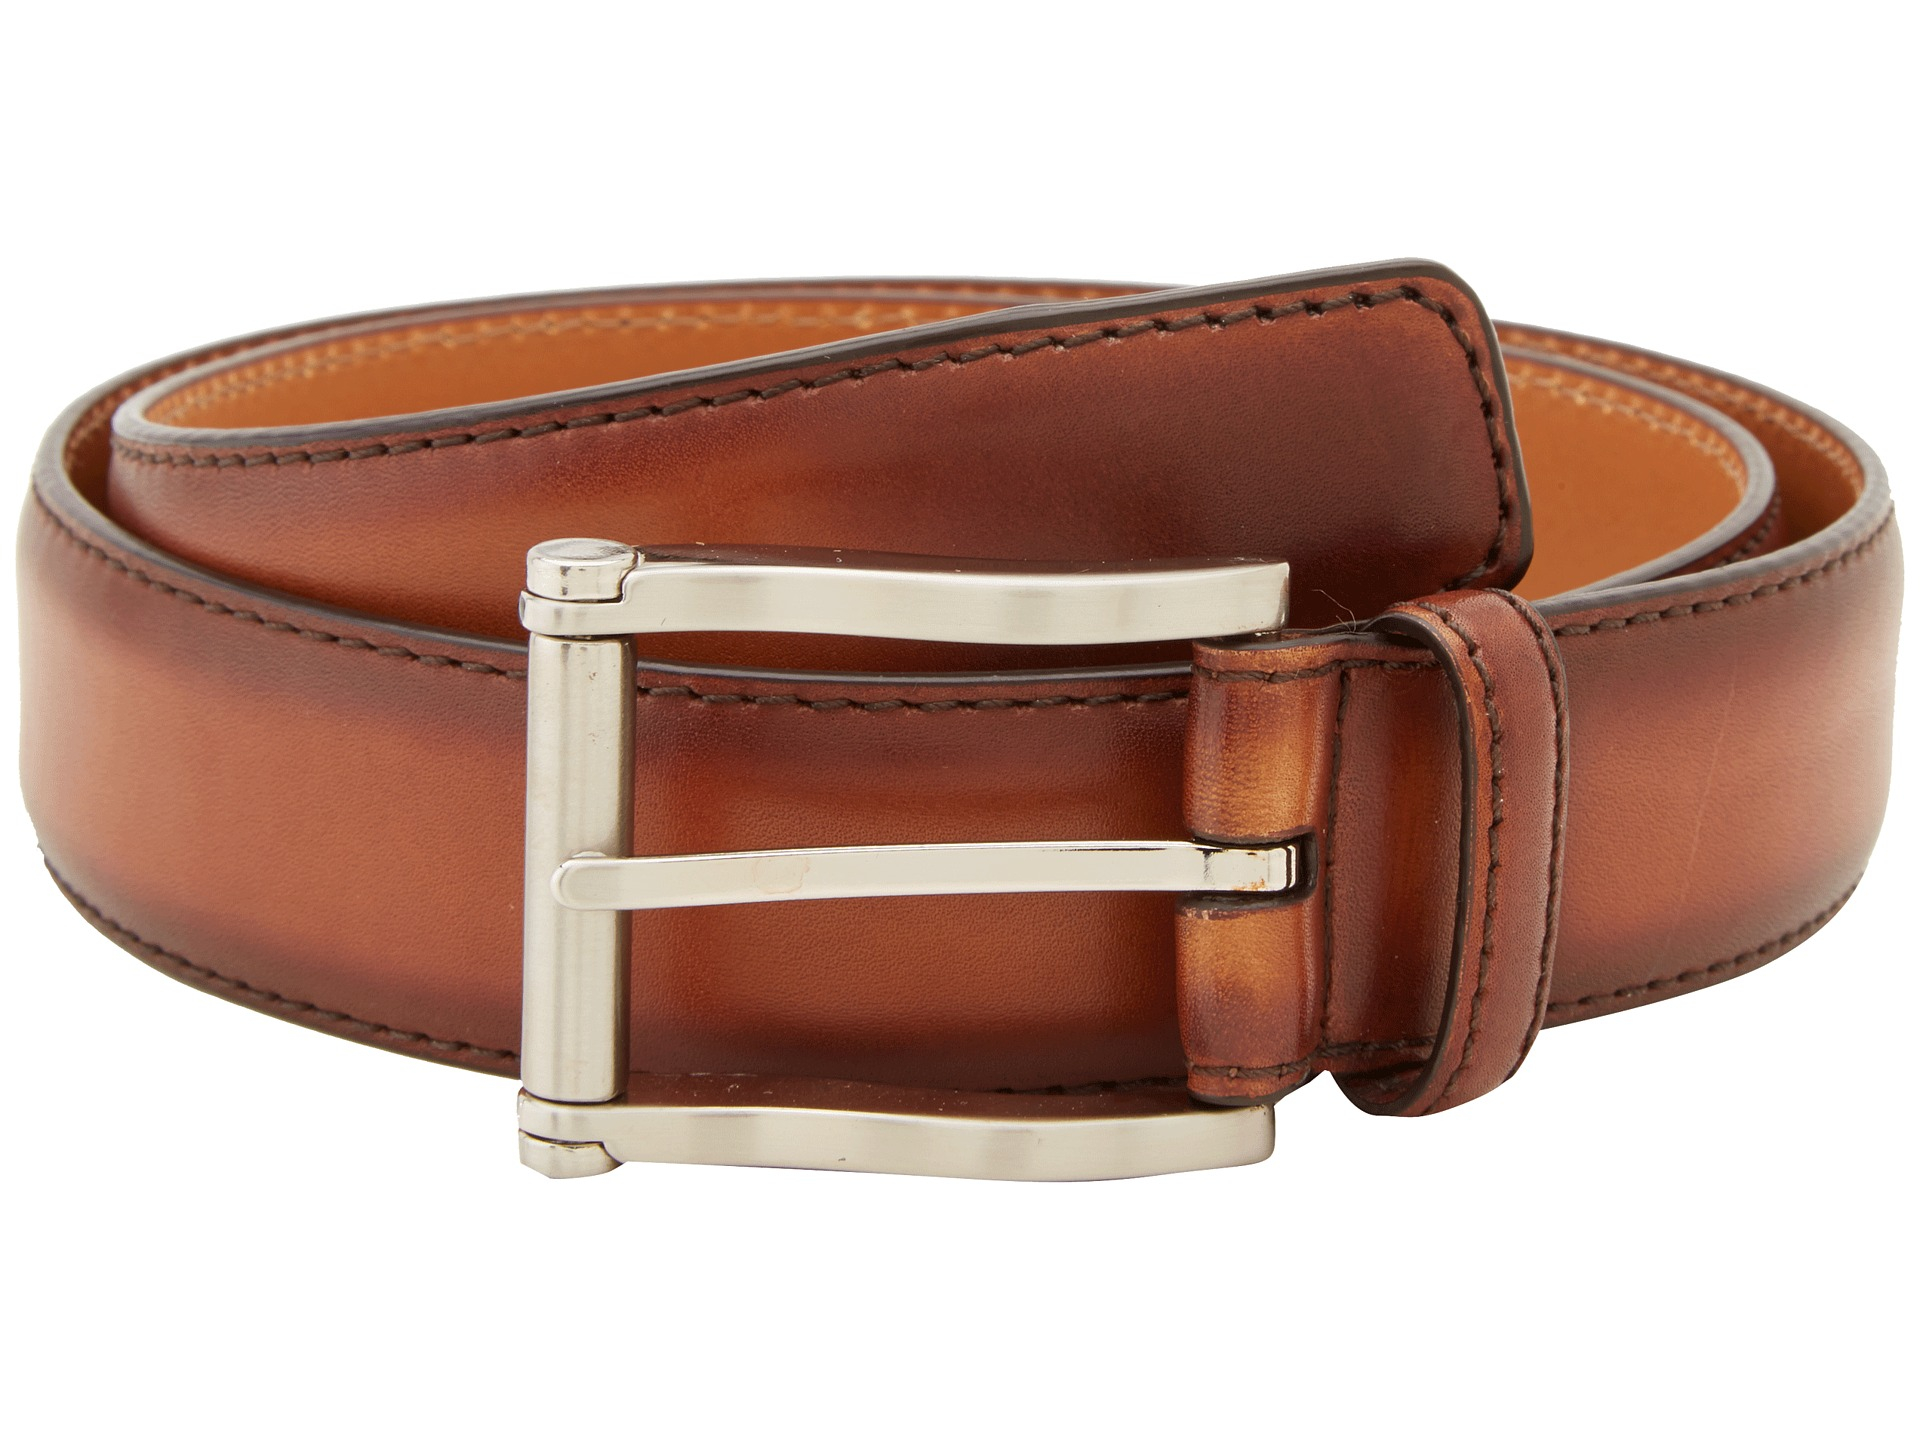 To Boot New York Men's Belt Cognac Italian Calf Belt Be the first to review this item. Price: $ & FREE ditilink.gqs & FREE Returns Return this item for free To Boot New York Men's Belt Cognac Italian Calf 30 $ Next. Customers also shopped for.